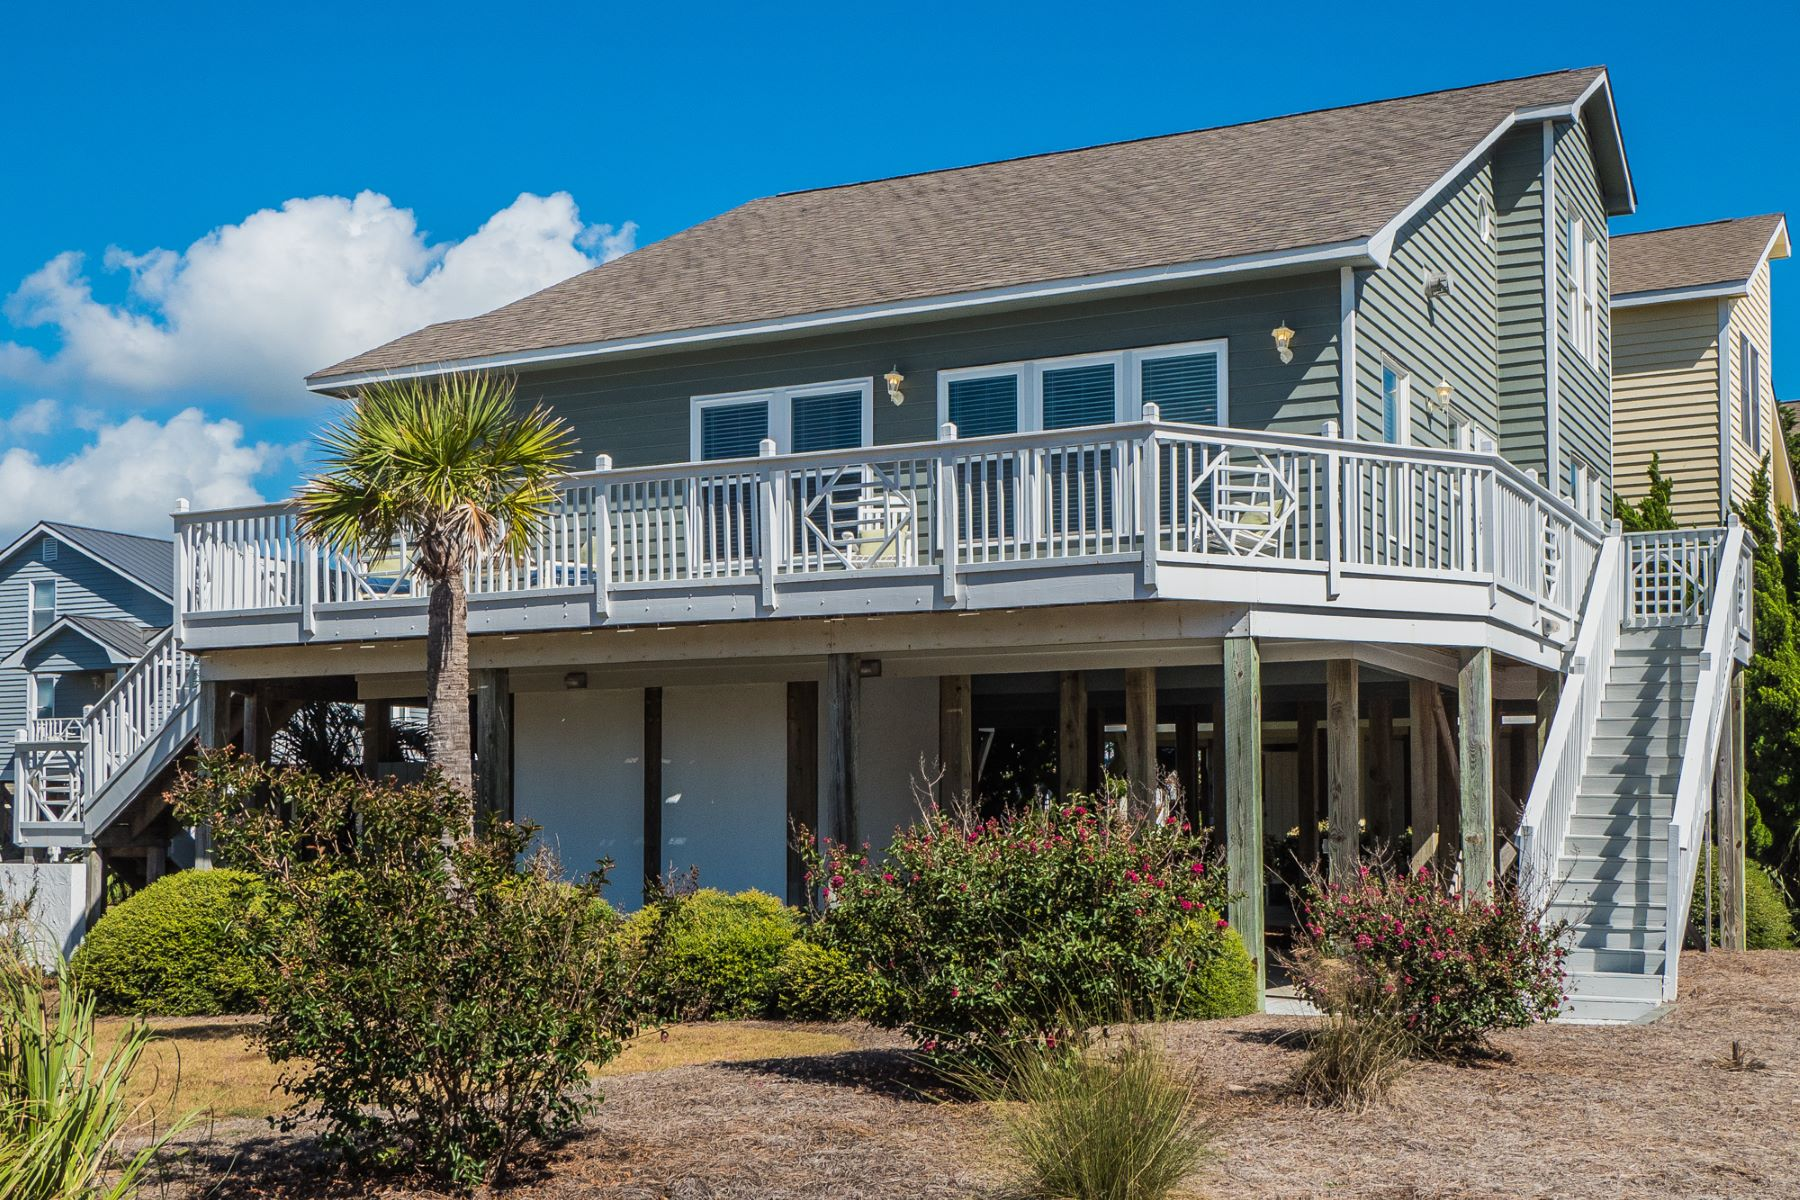 Single Family Home for Sale at Ocean Views at this Corner Lot Beach House 11 Bayberry Drive, Ocean Isle Beach, North Carolina, 28469 United States